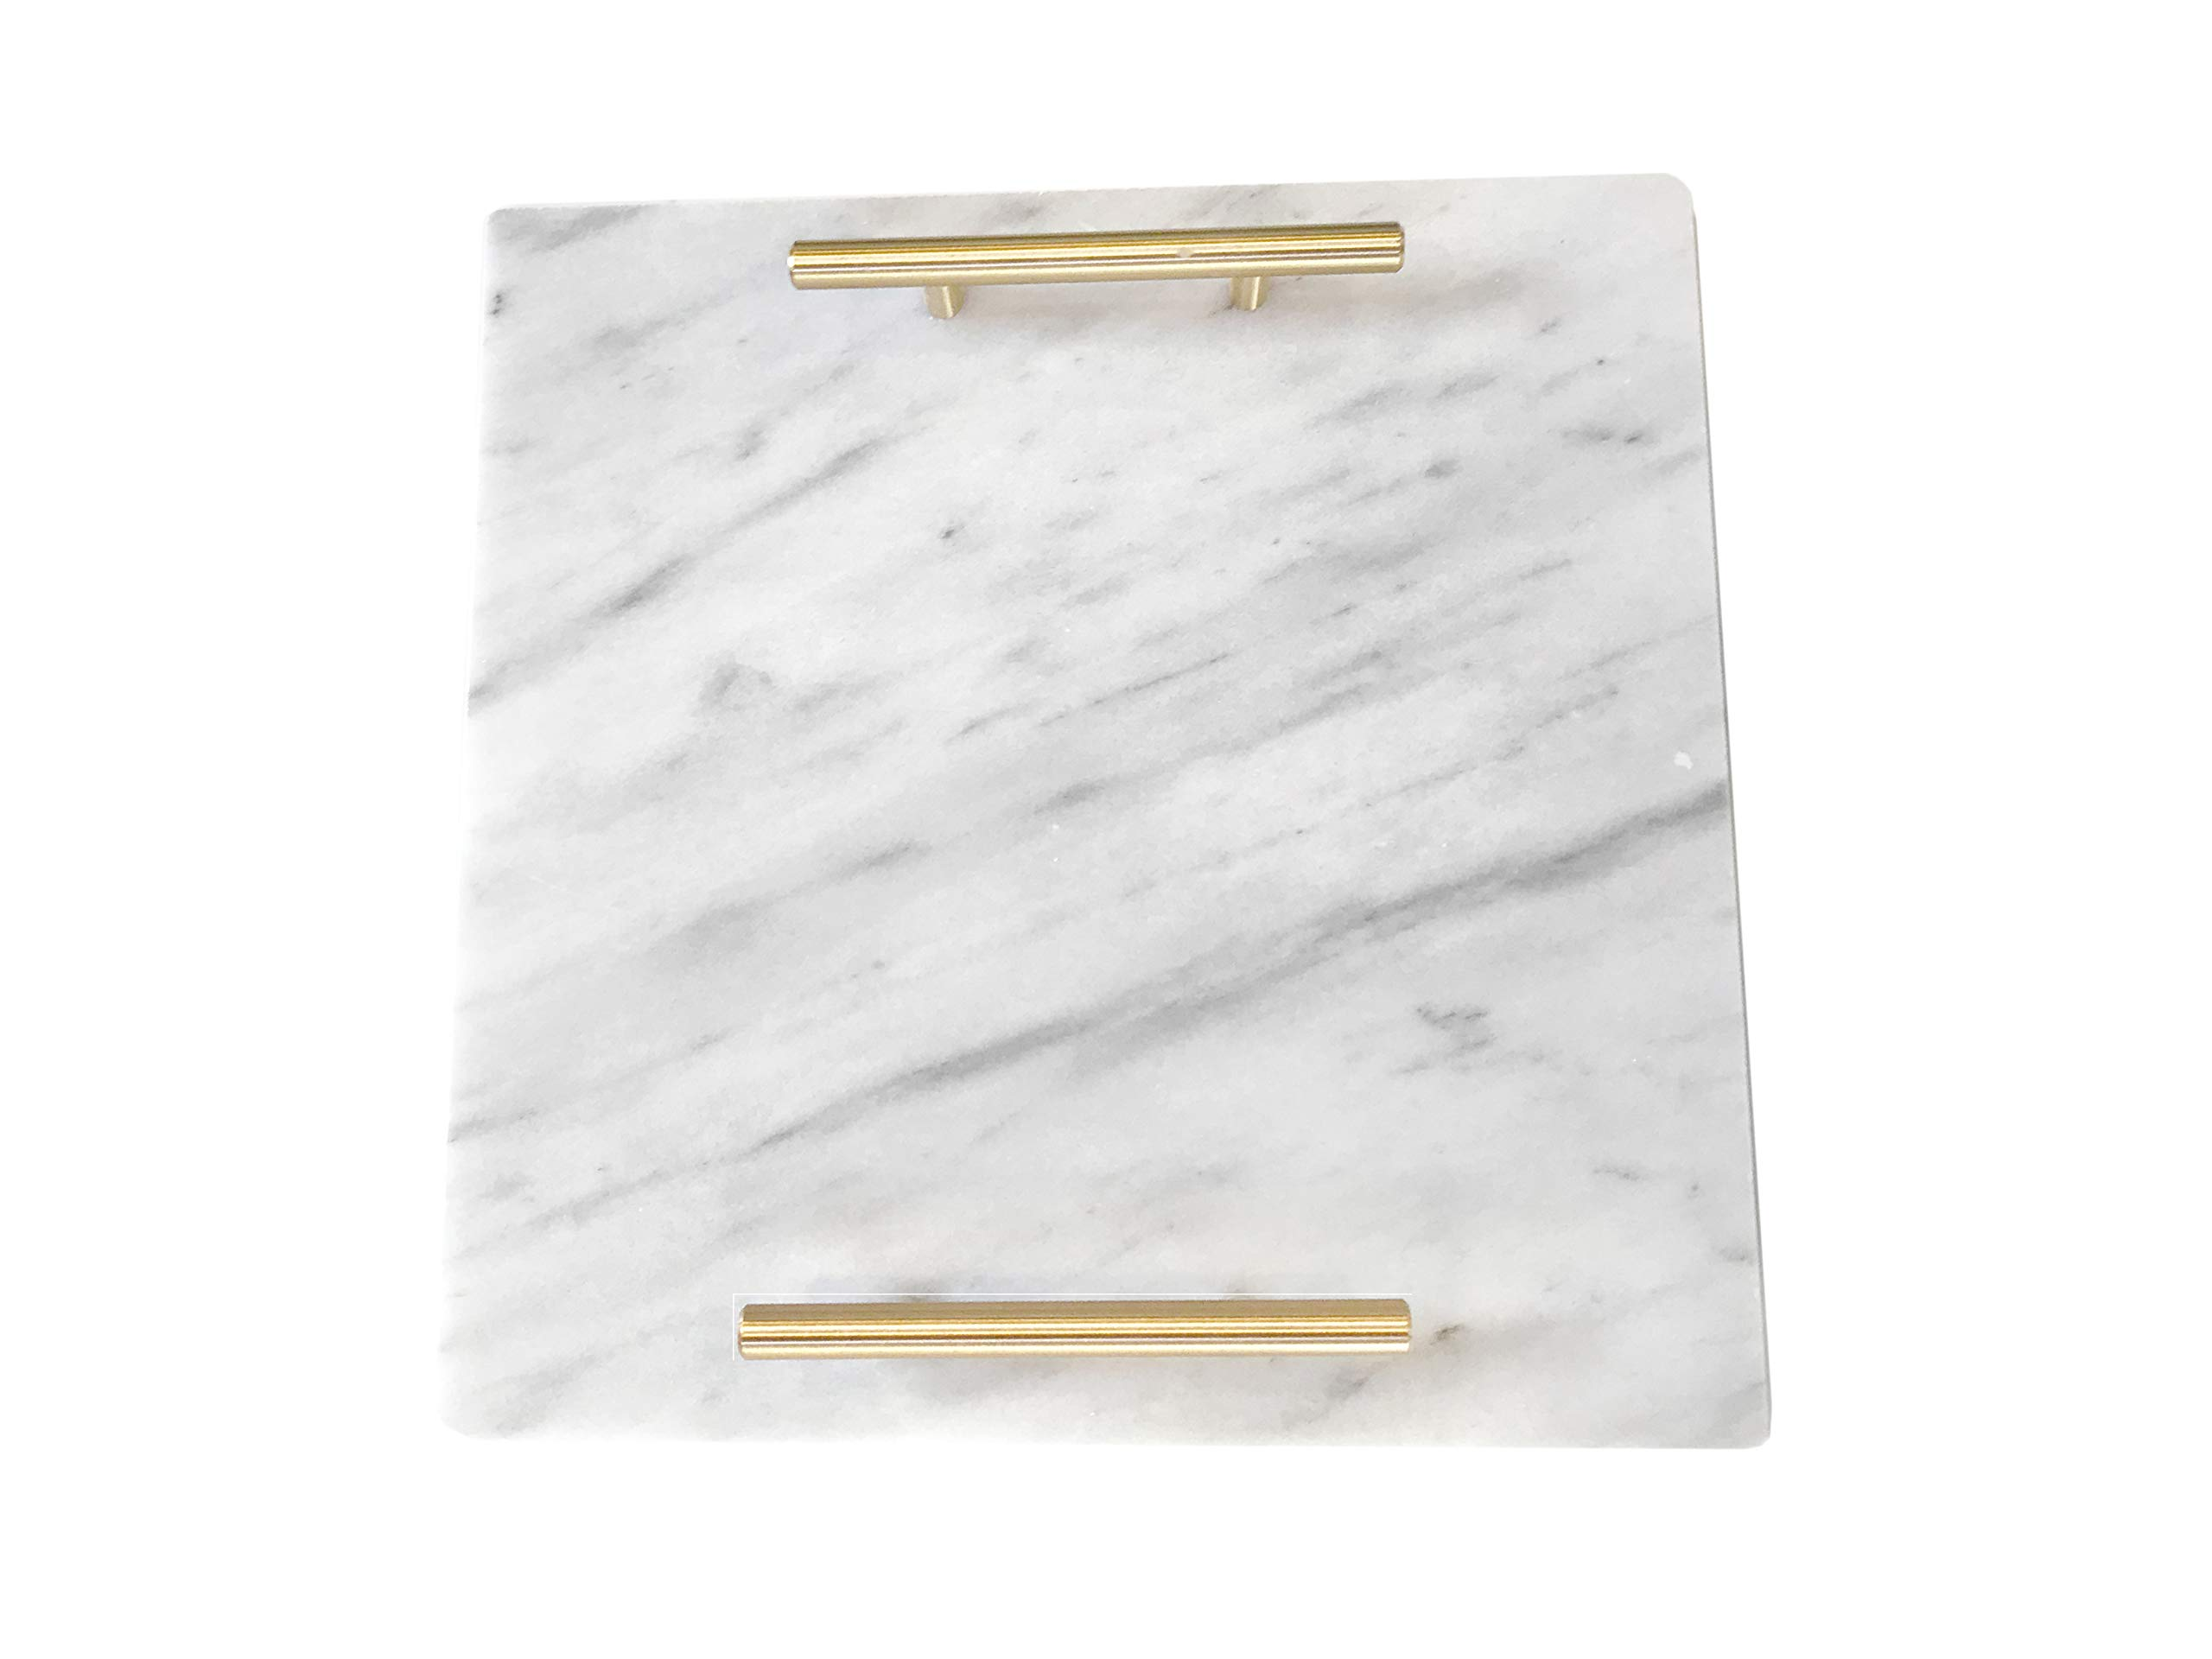 Cararra Blanco White Marble Slab Cheese Board with Gold Brushed Metal Handles